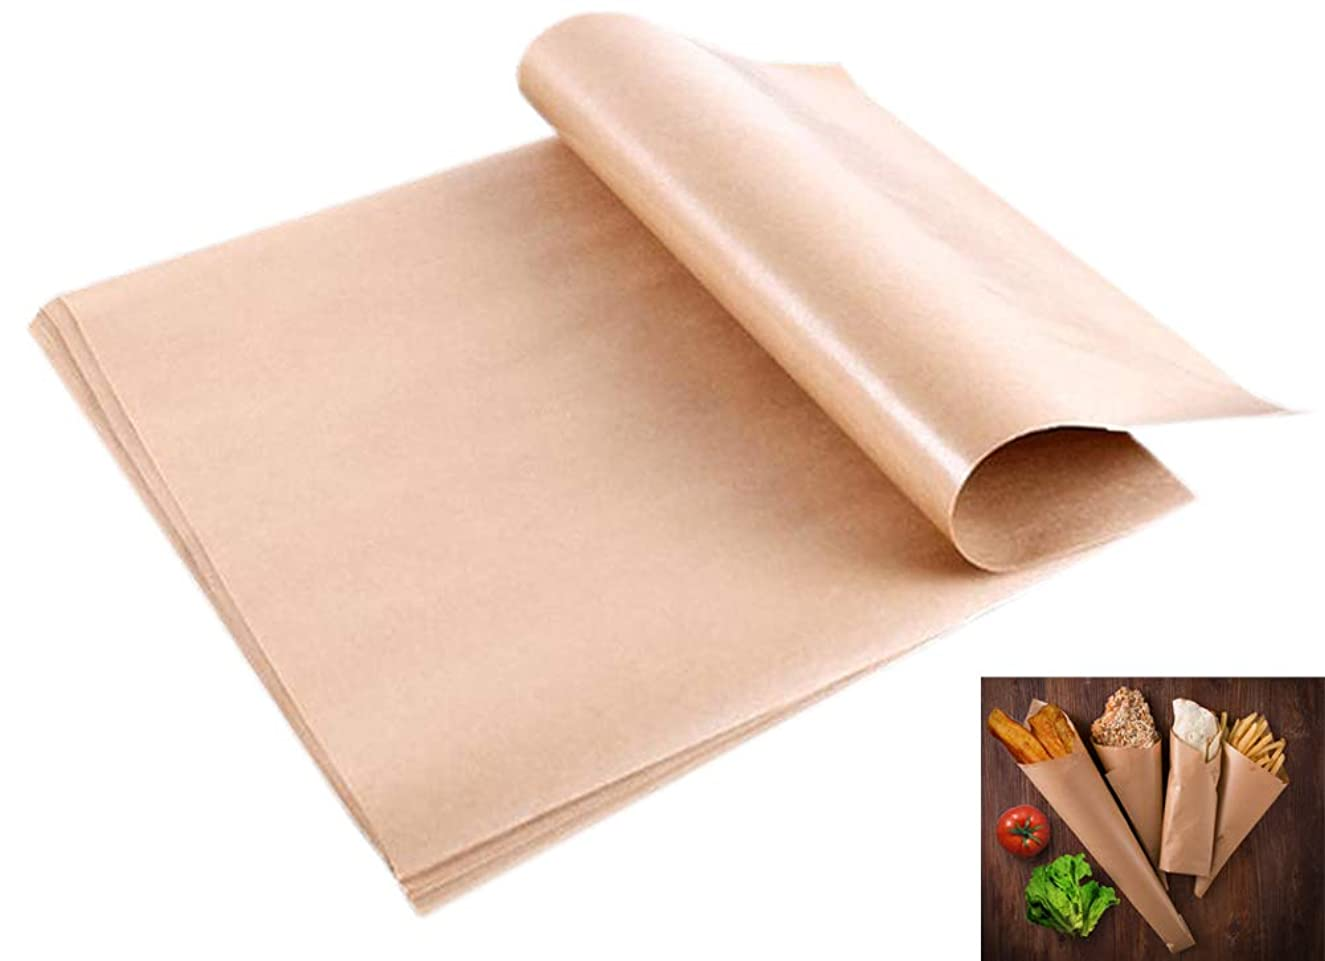 Ocharzy 200 pcs Natural Kraft Food Wrapping Paper Baking Sheet Paper Oilproof Non-Stick No Curl (200 pcs, 11.611.22 in)